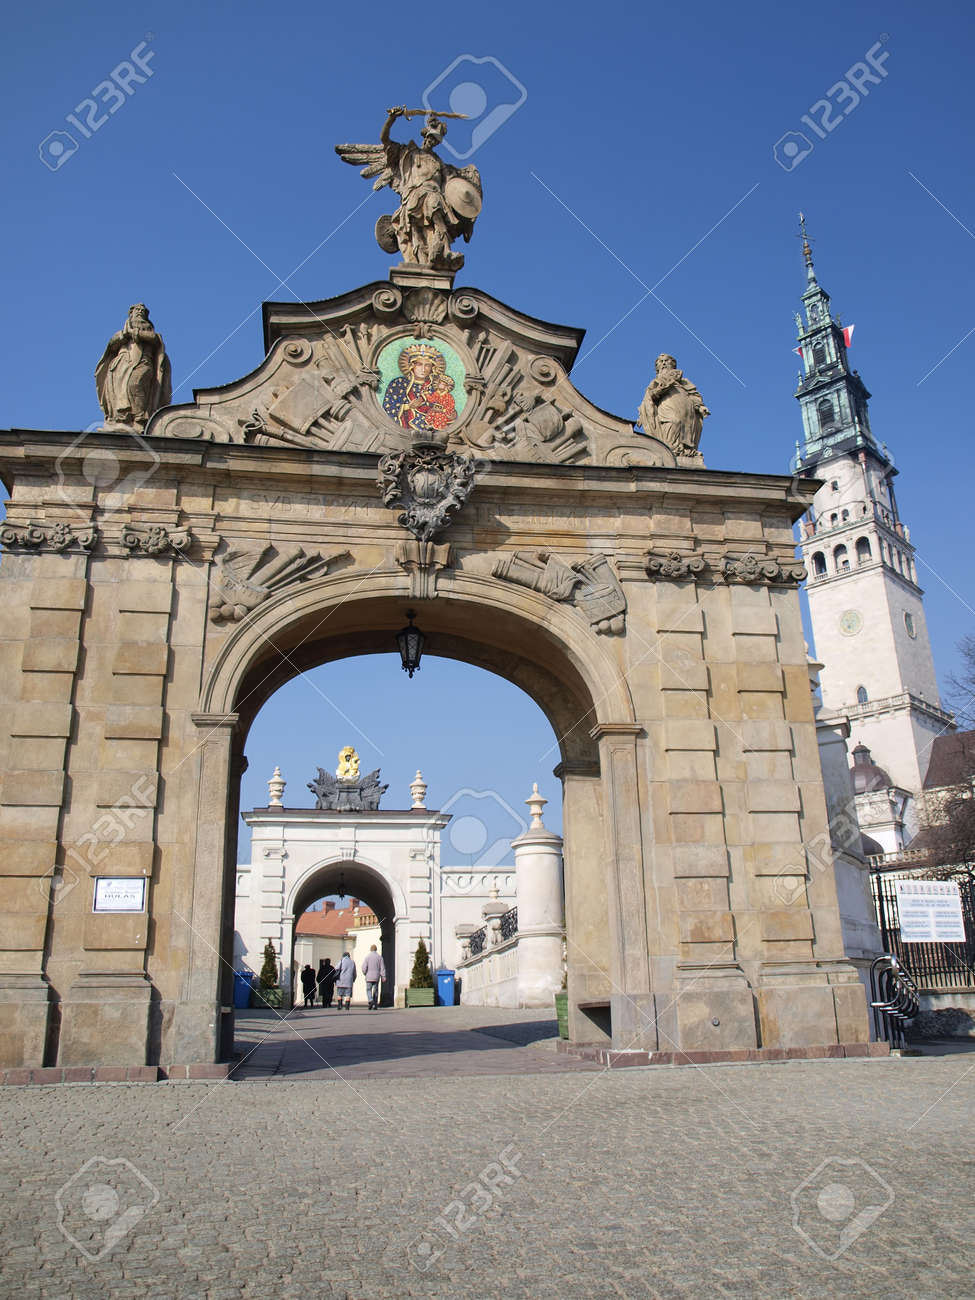 The gate to the shrine of Our Lady Queen of Polish Jasna Gora in Czestochowa - 9090648